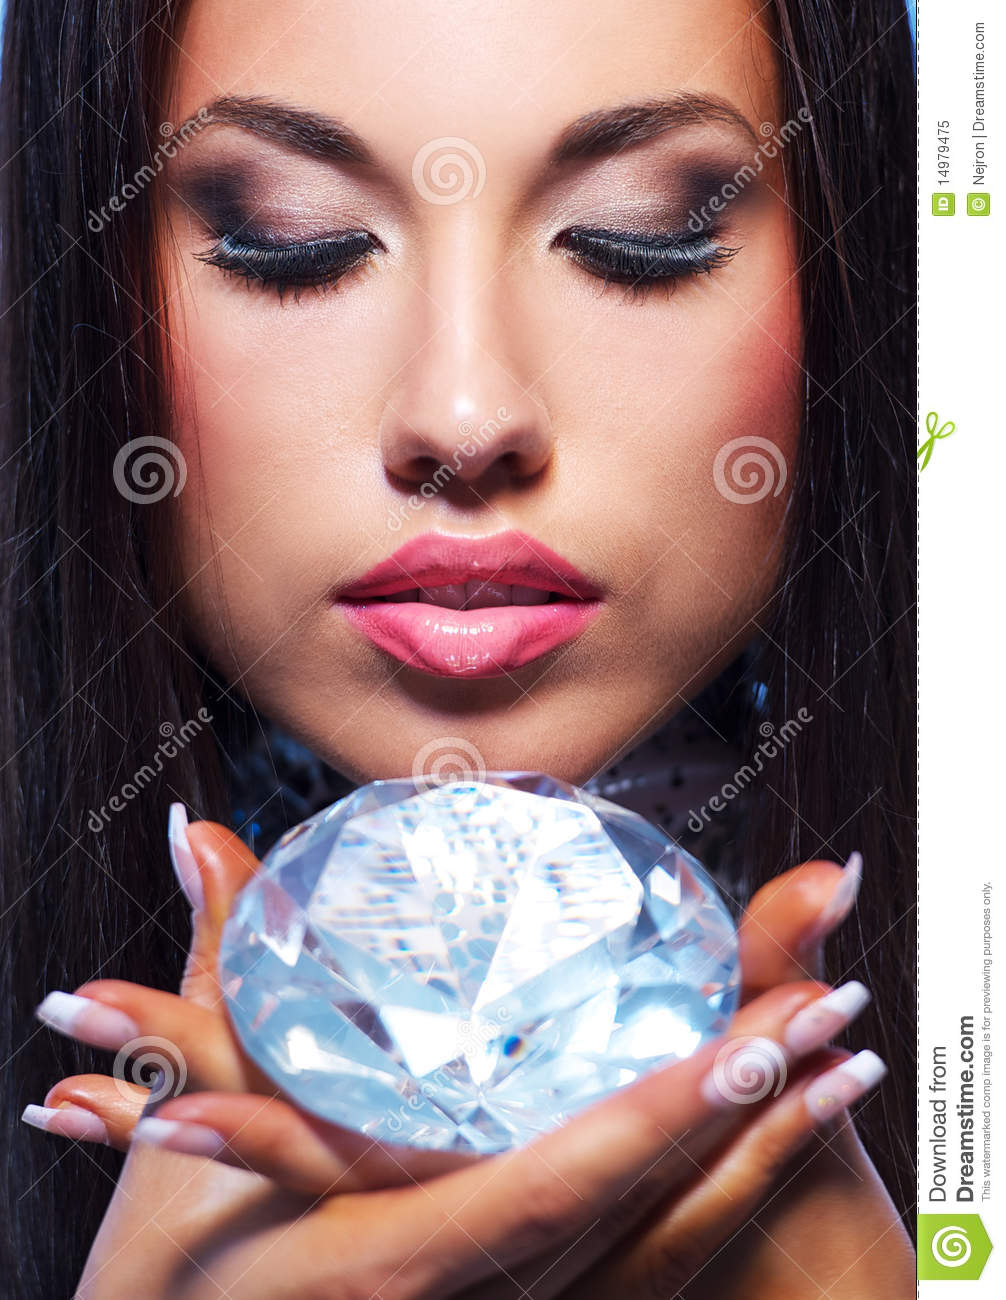 Beautiful woman with a diamond